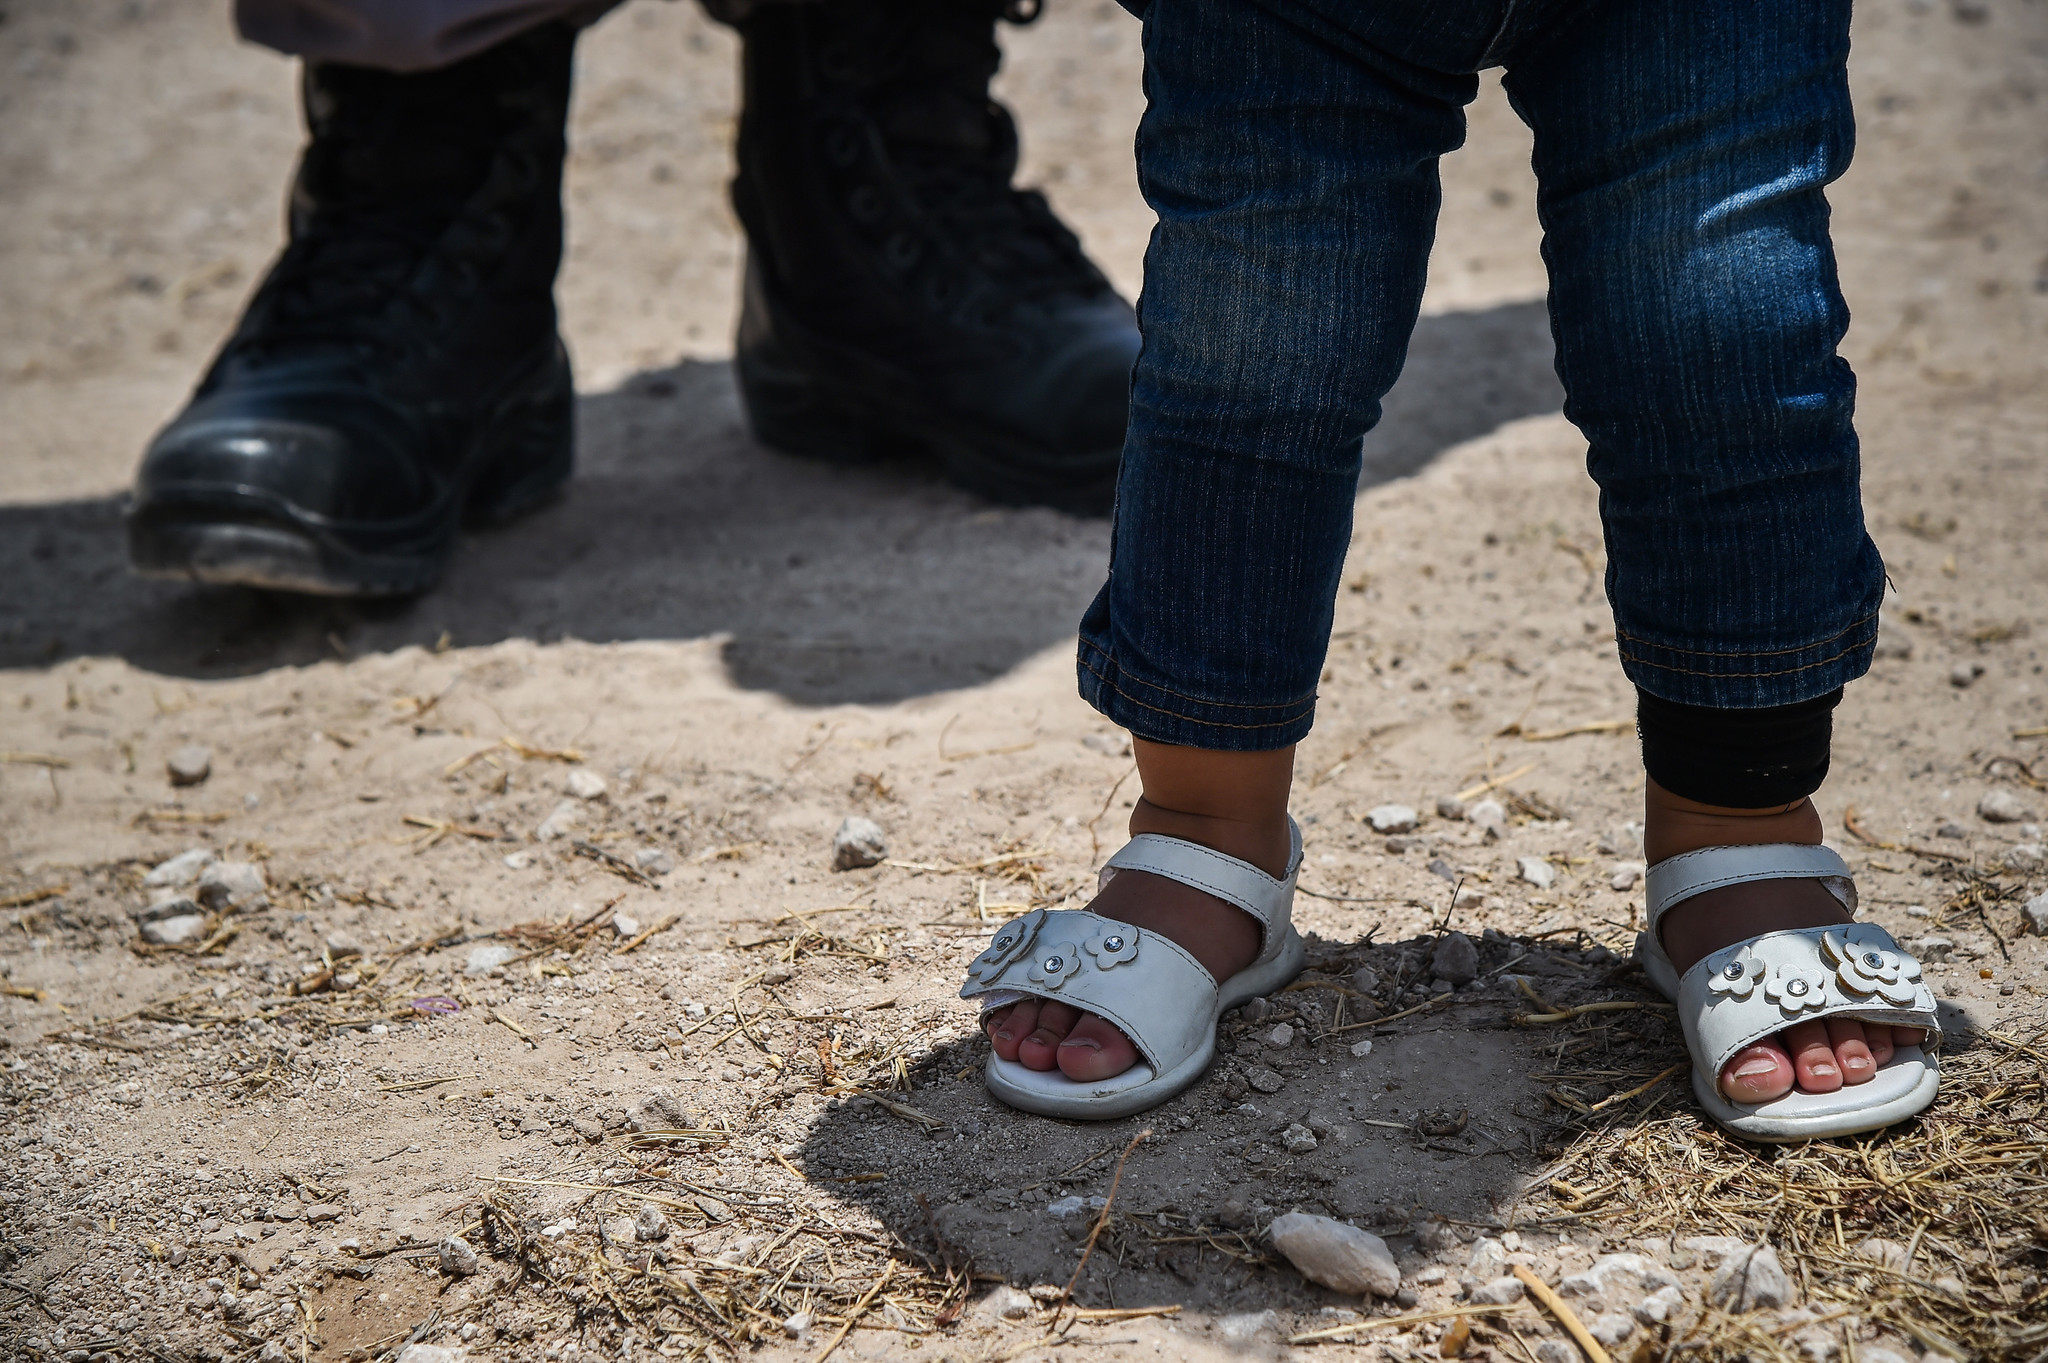 Texas sheriff refuses to help feds guard migrant children tent city, saying 'it'...